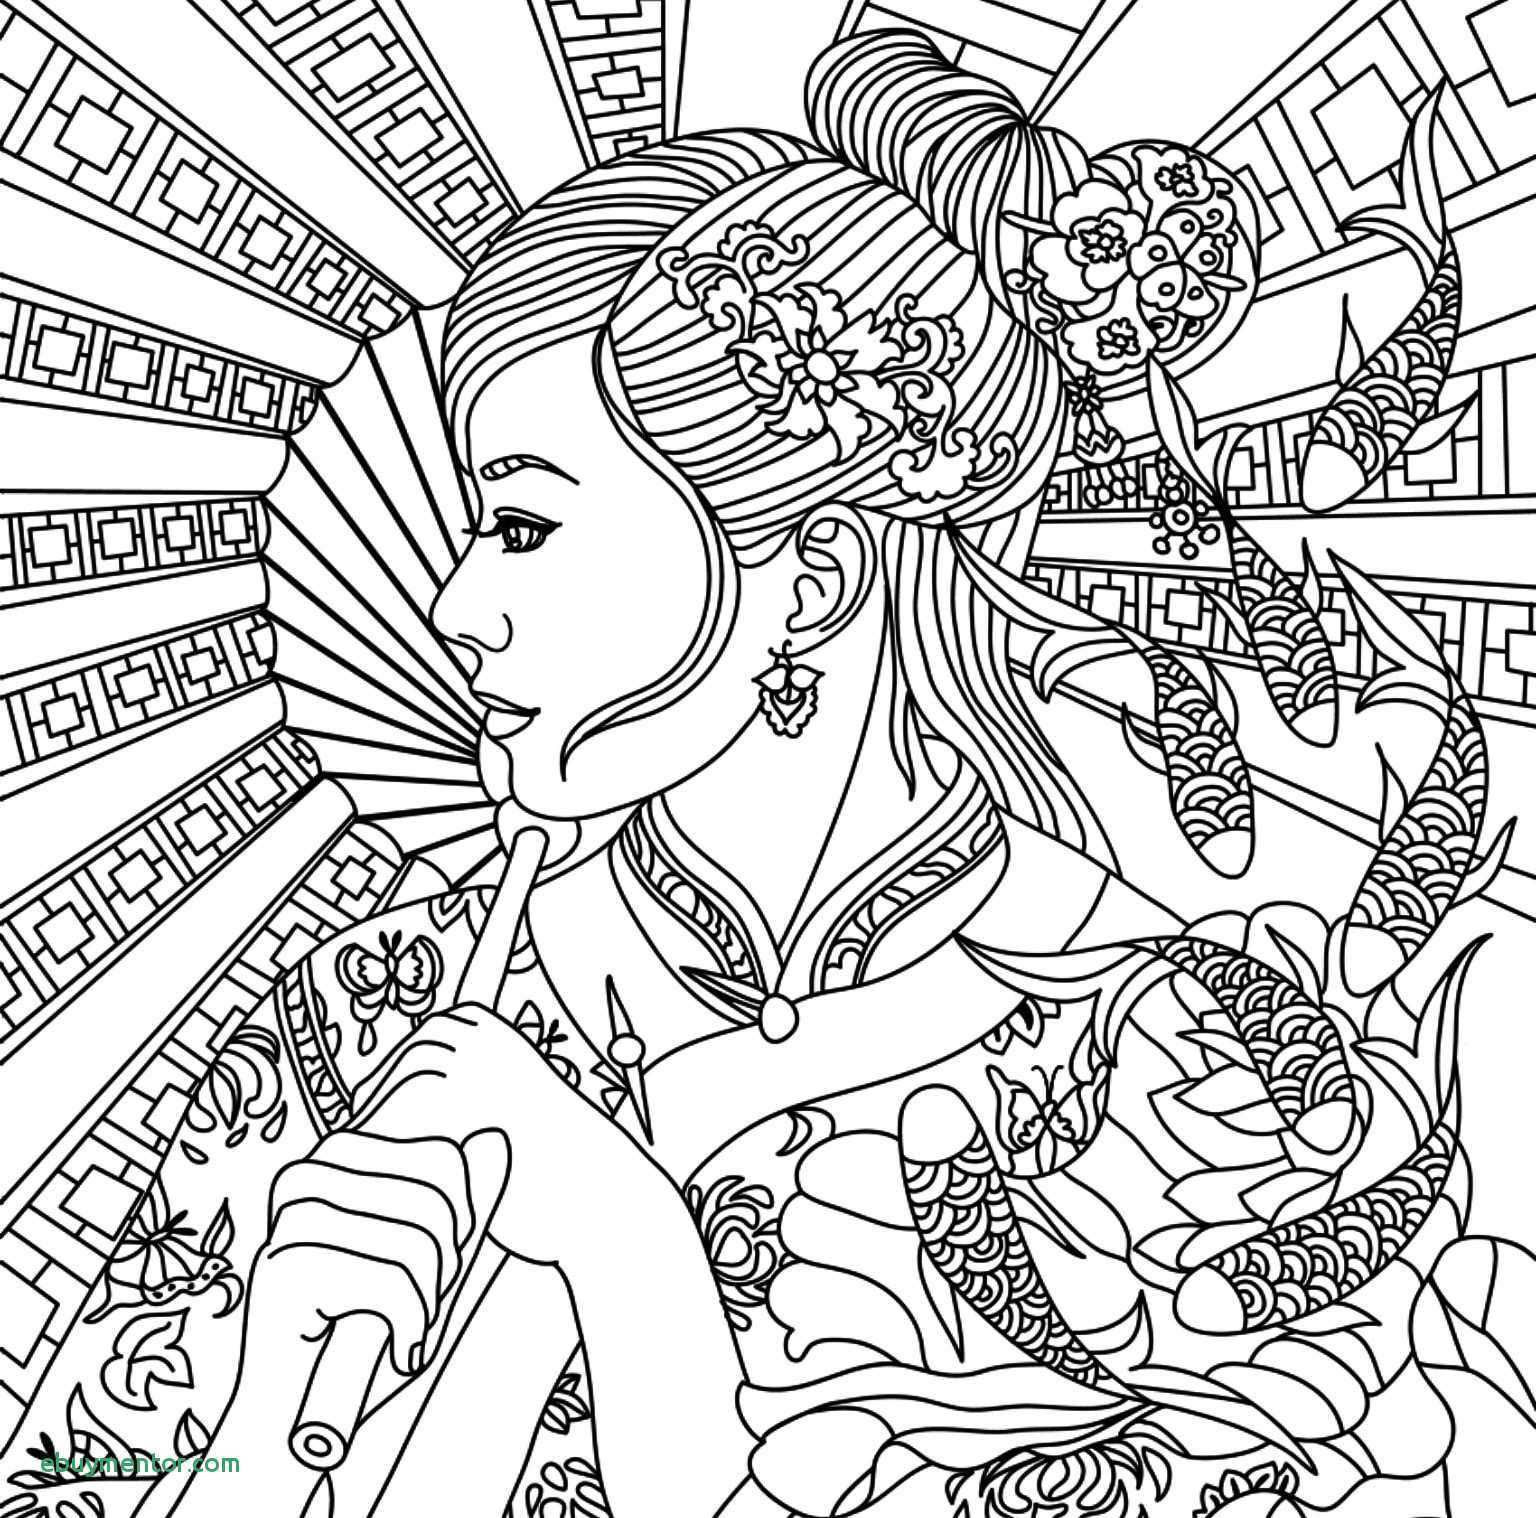 Ausmalbilder Elsa Und Anna Inspirierend Free Frozen Coloring Pages to Print Awesome Beautiful Coloring Pages Das Bild